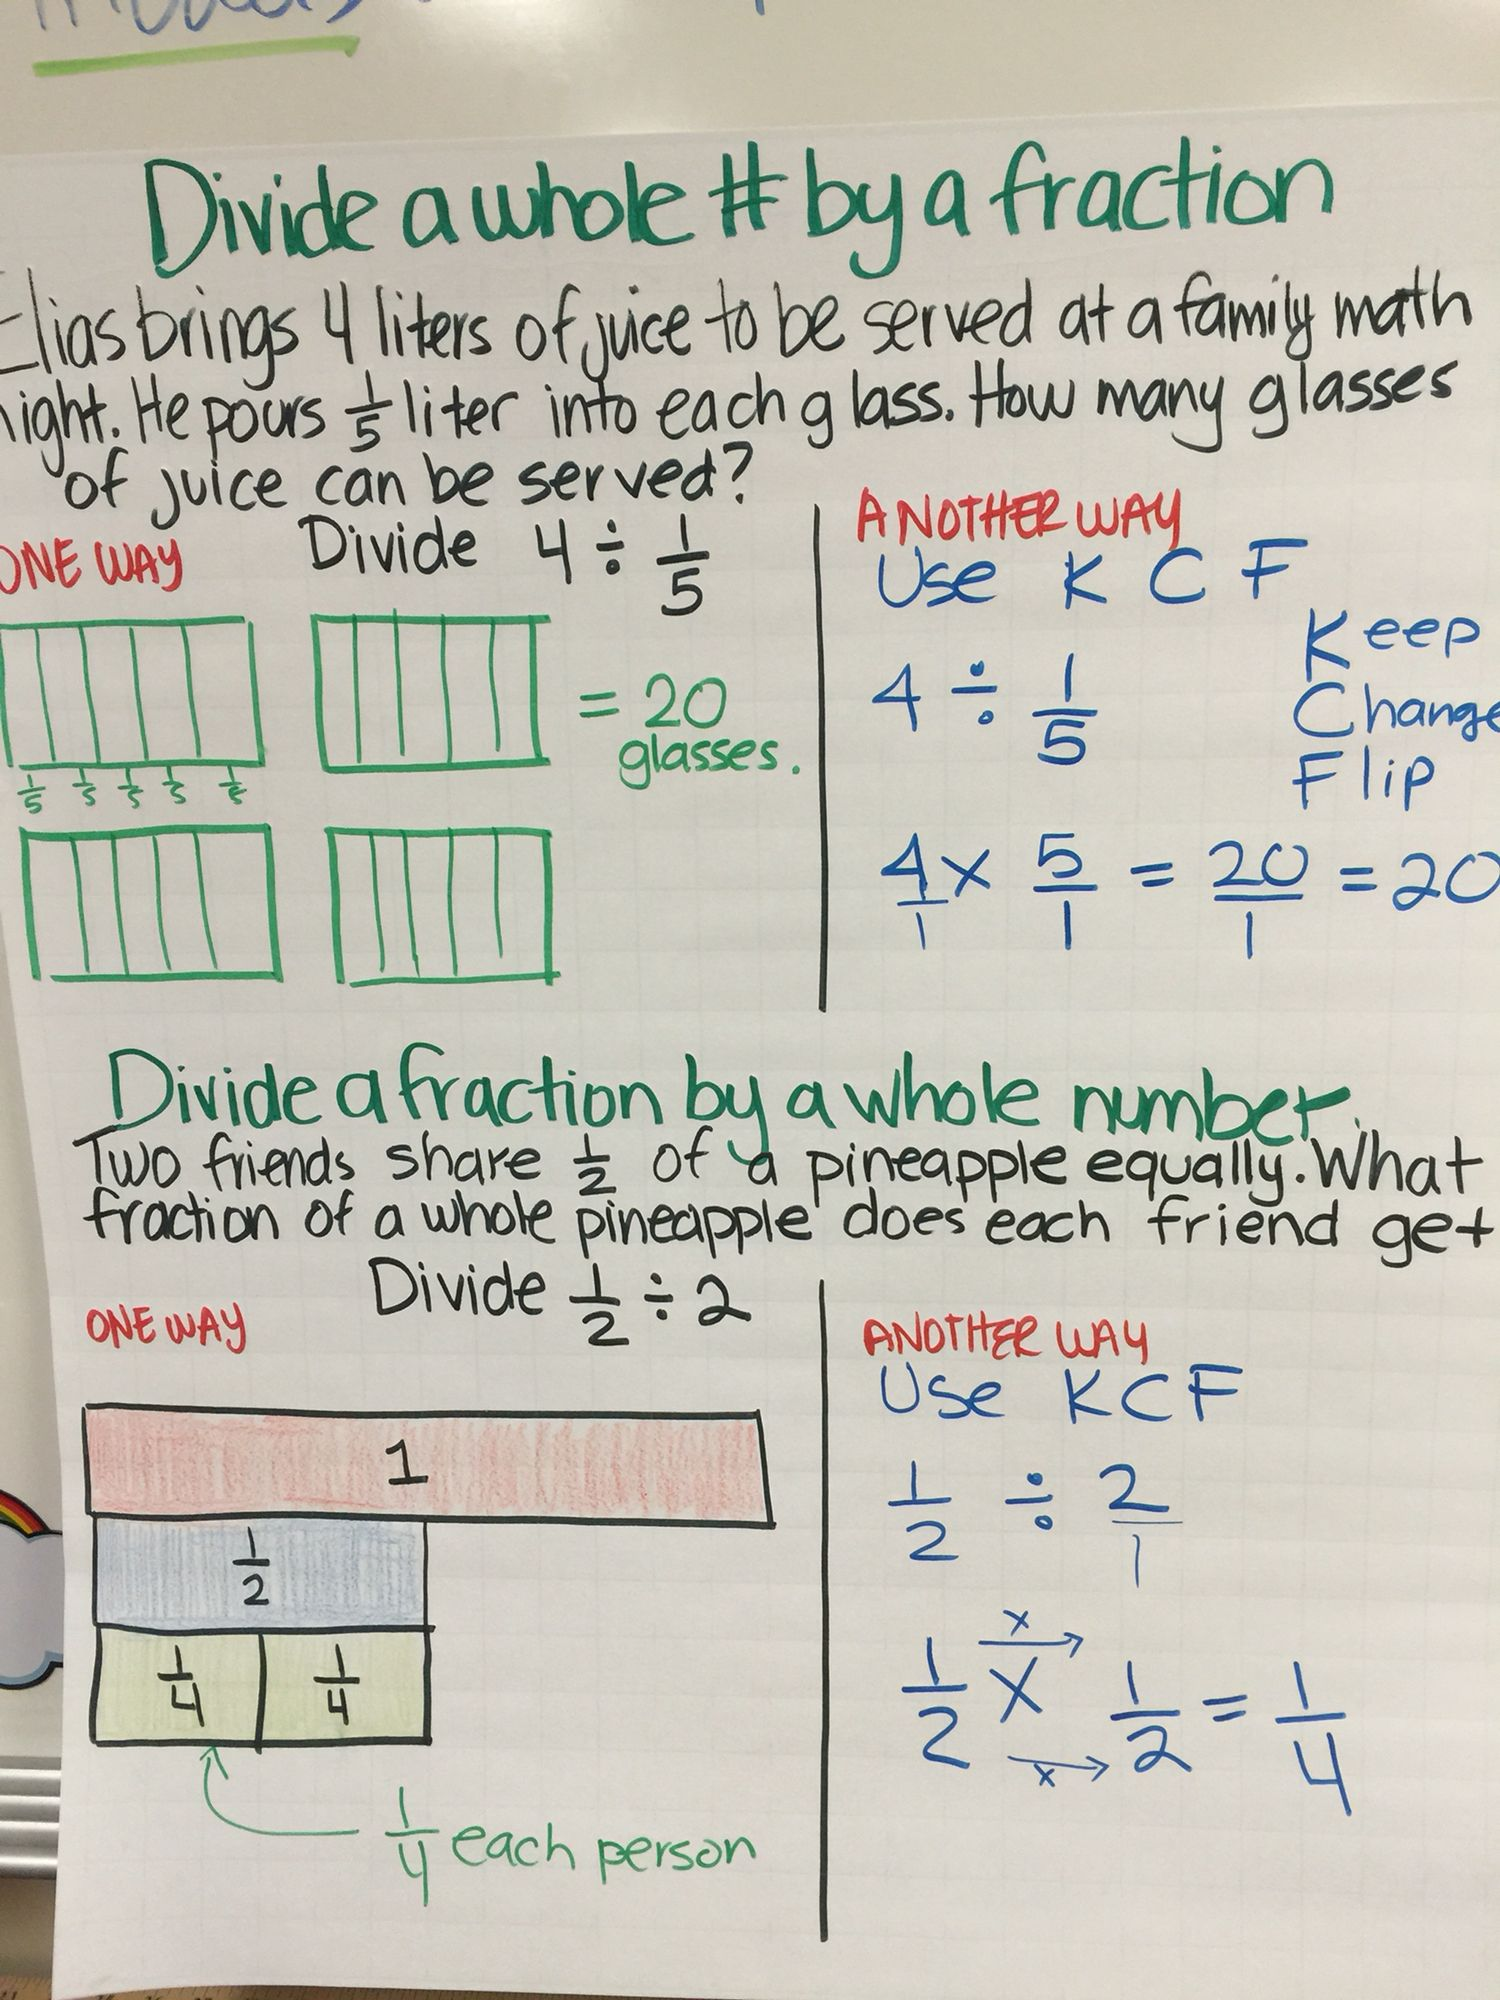 divide fractions and whole numbers anchor chart | teaching math